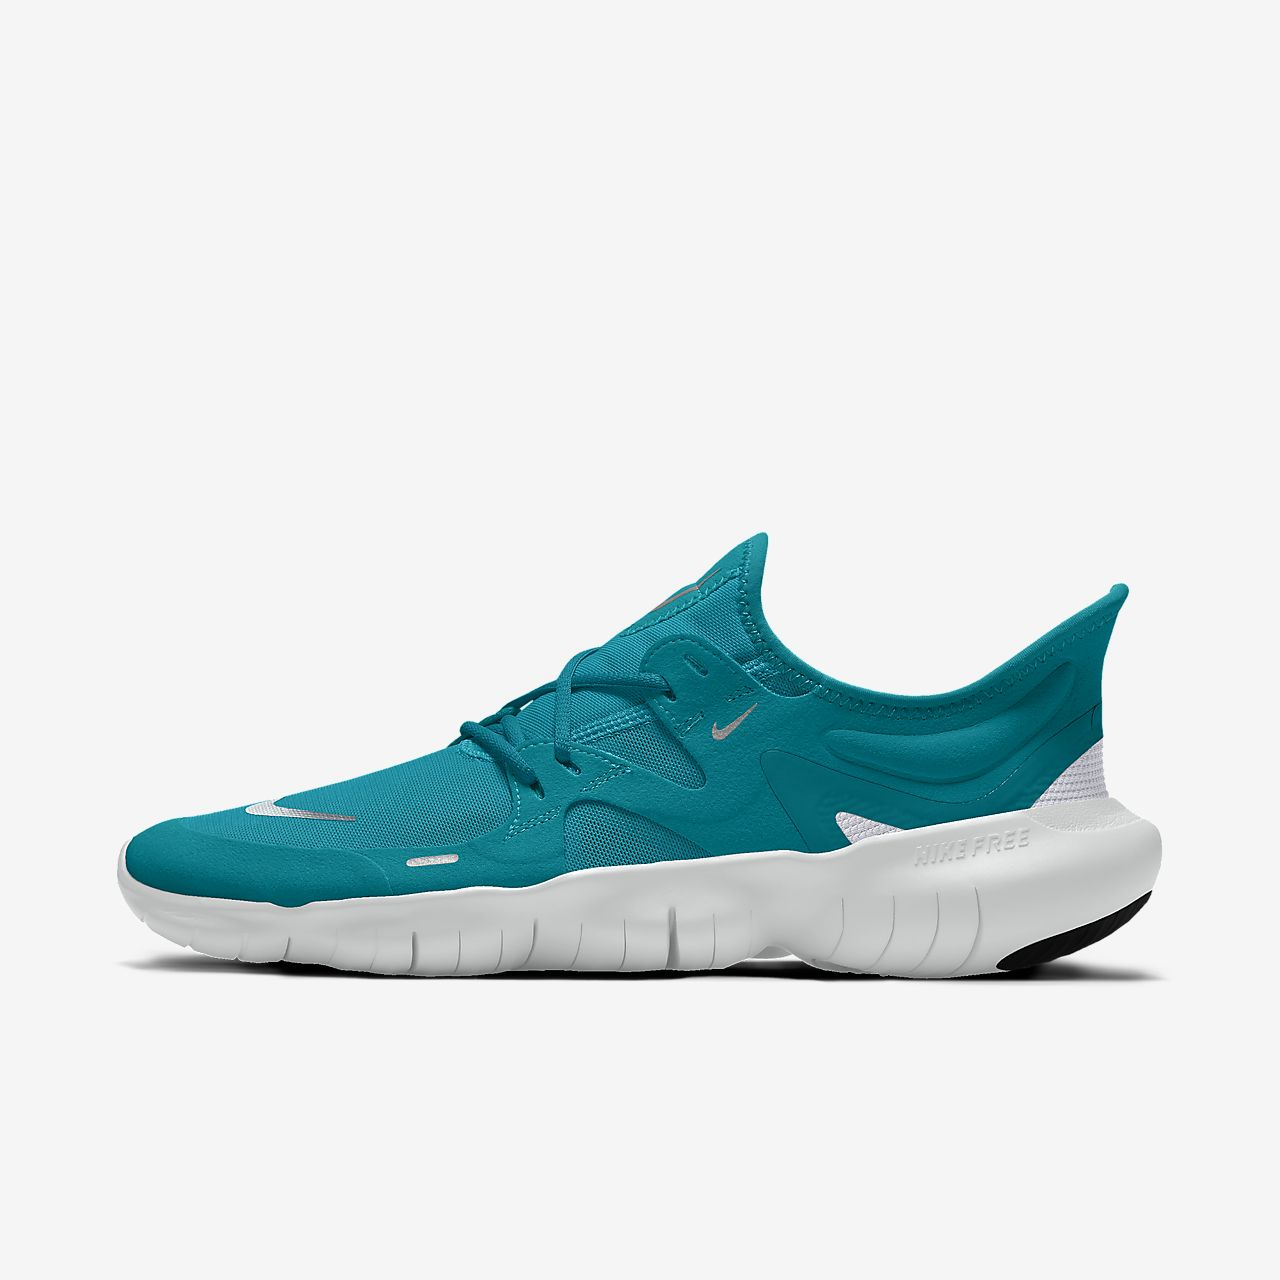 Chaussure de running personnalisable Nike Free RN 5.0 By You pour Femme